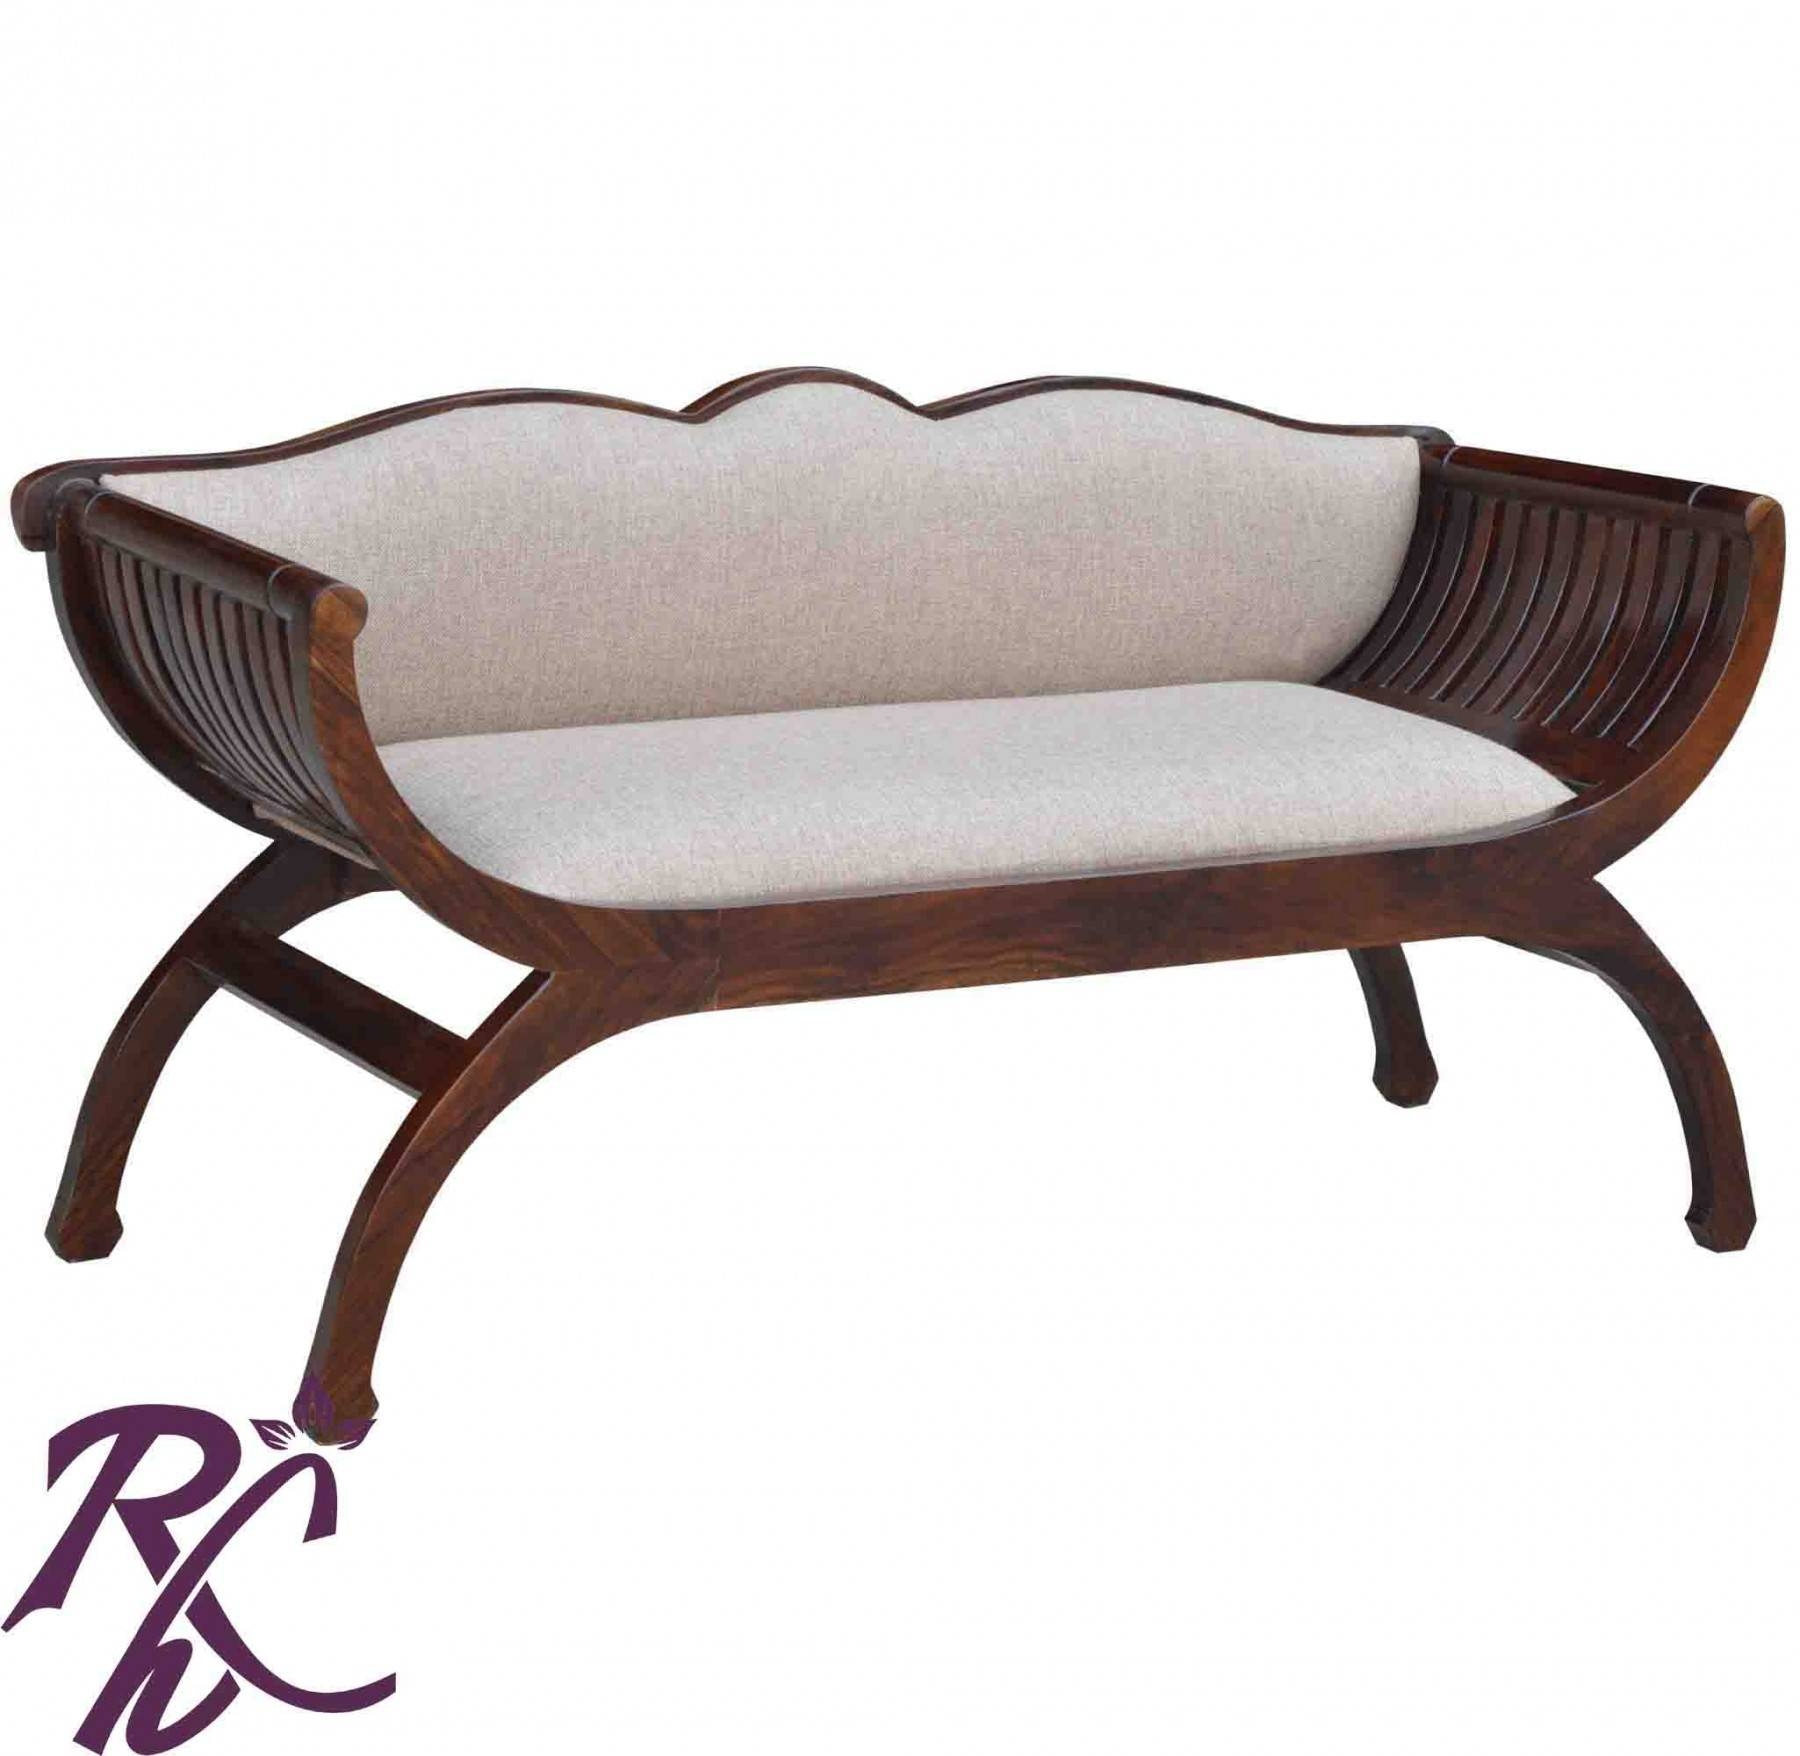 Online C Shaped Sofa -Rajhandicraft Furniture within C Shaped Sofa (Image 25 of 30)